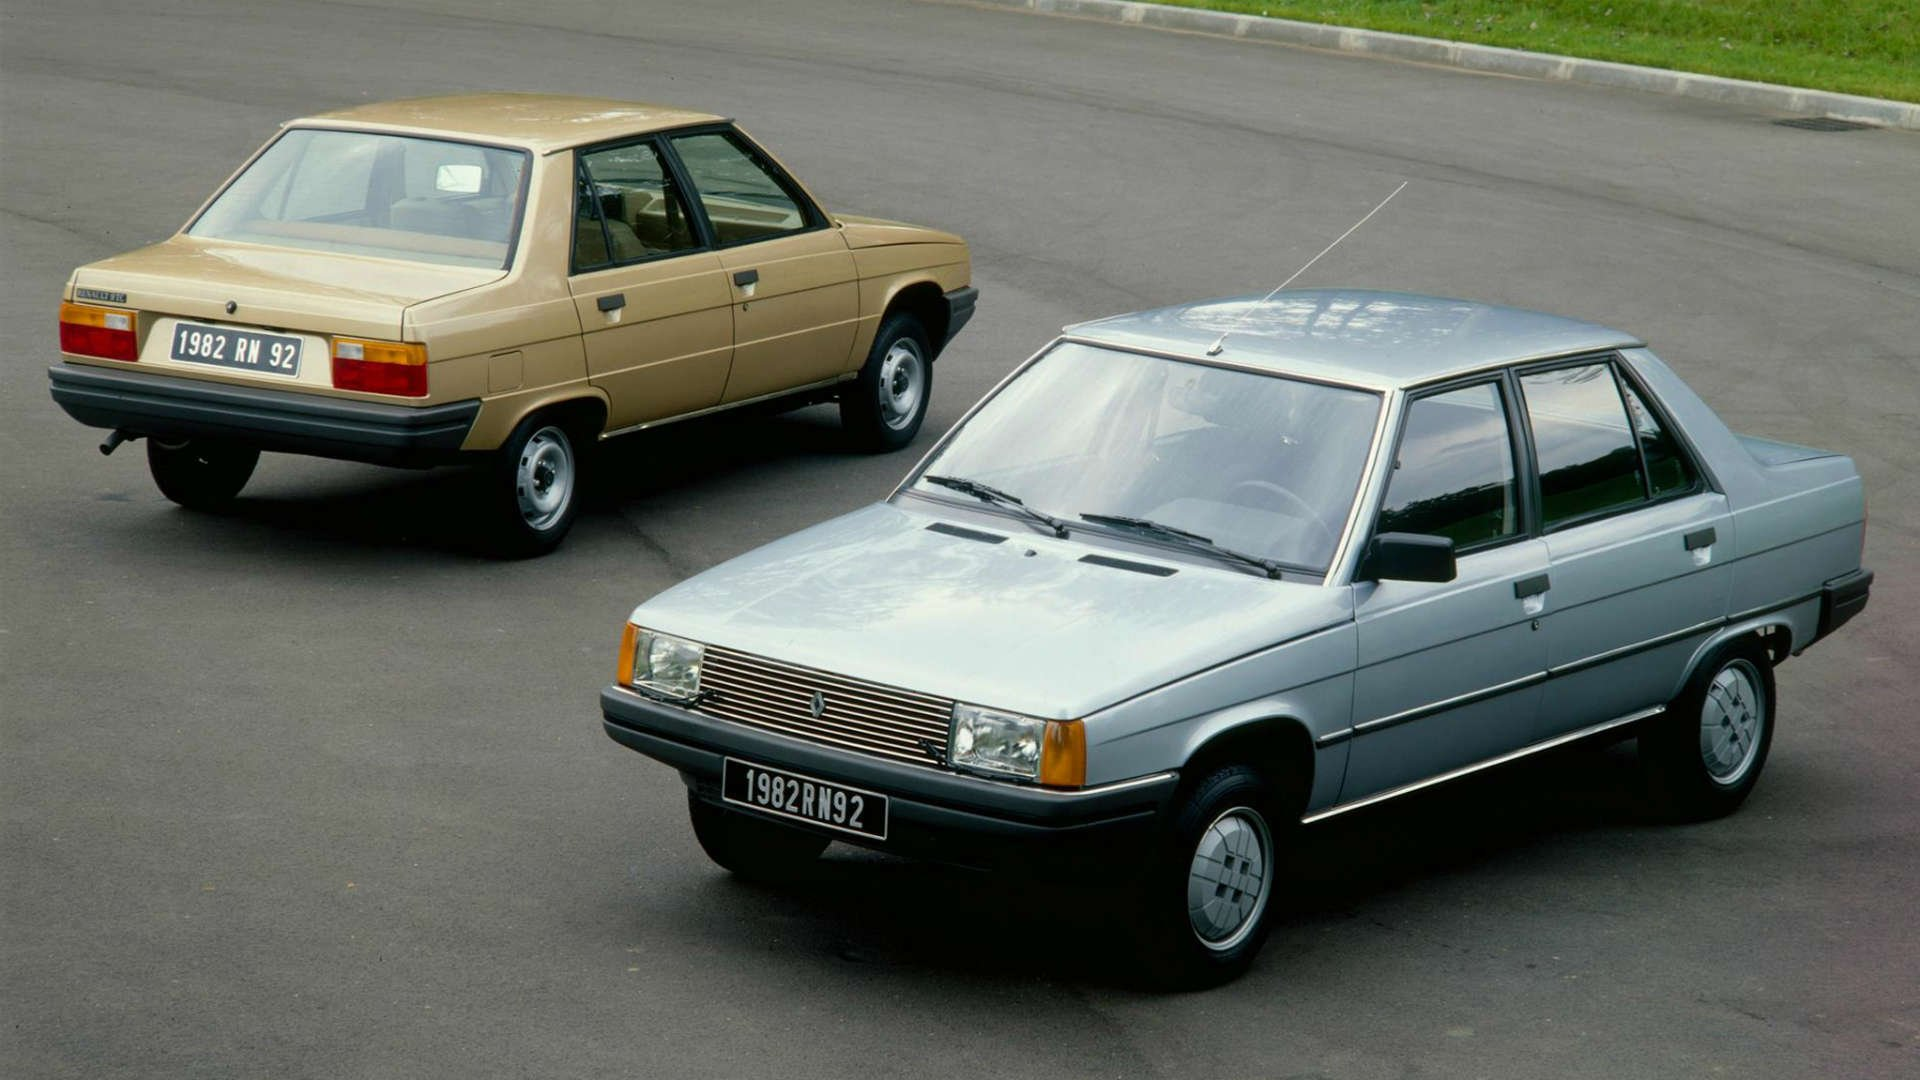 Renault 9 front and rear